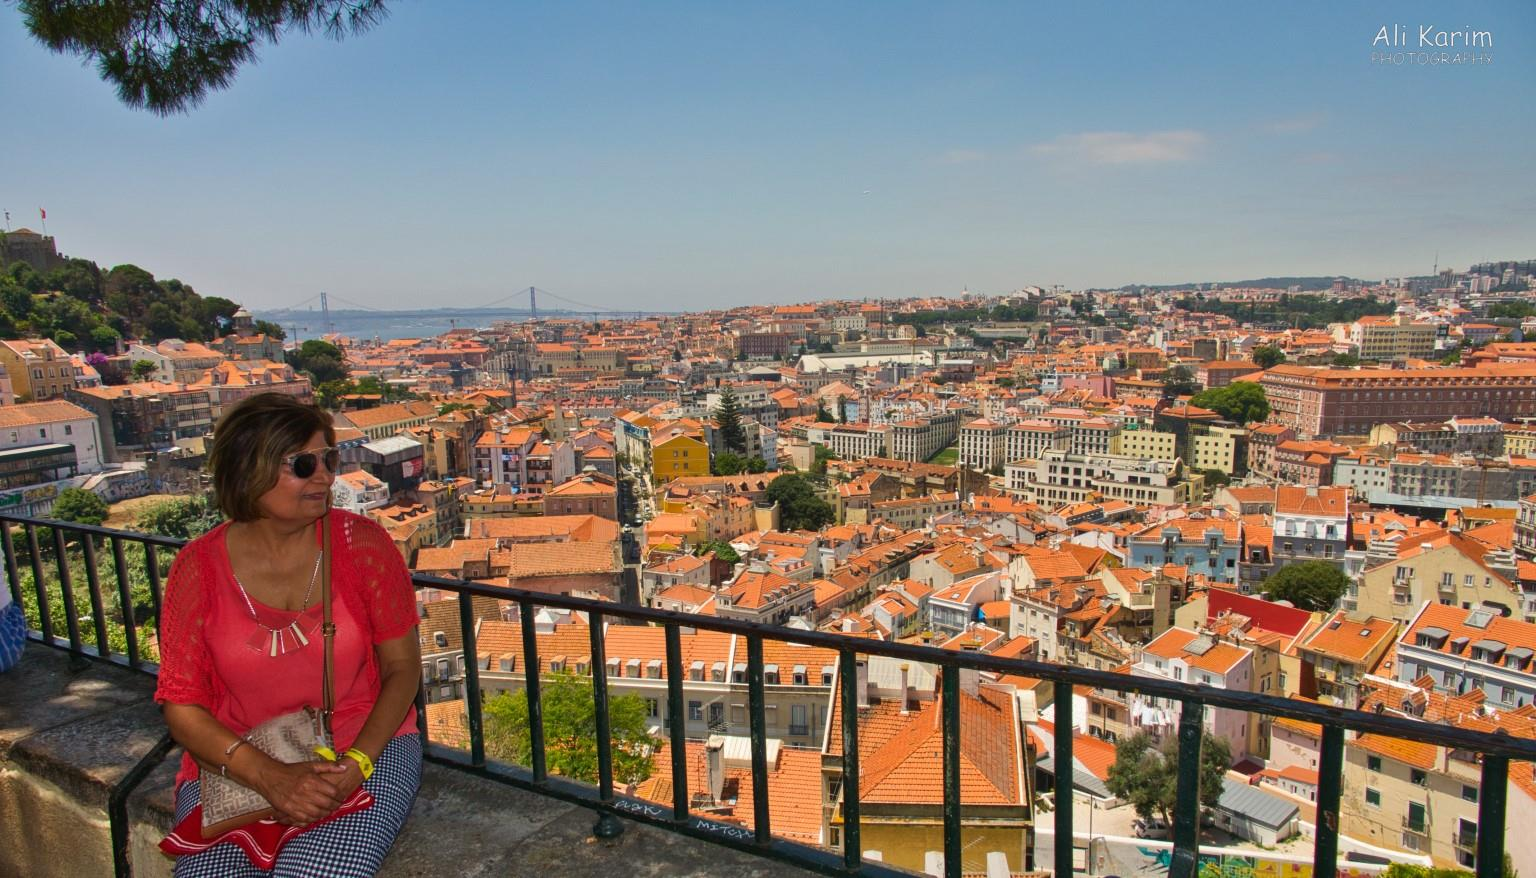 Lisbon Portugal: Another hilltop viewpoint at the Viewpoint Sophia de Mello Breyner Andresen